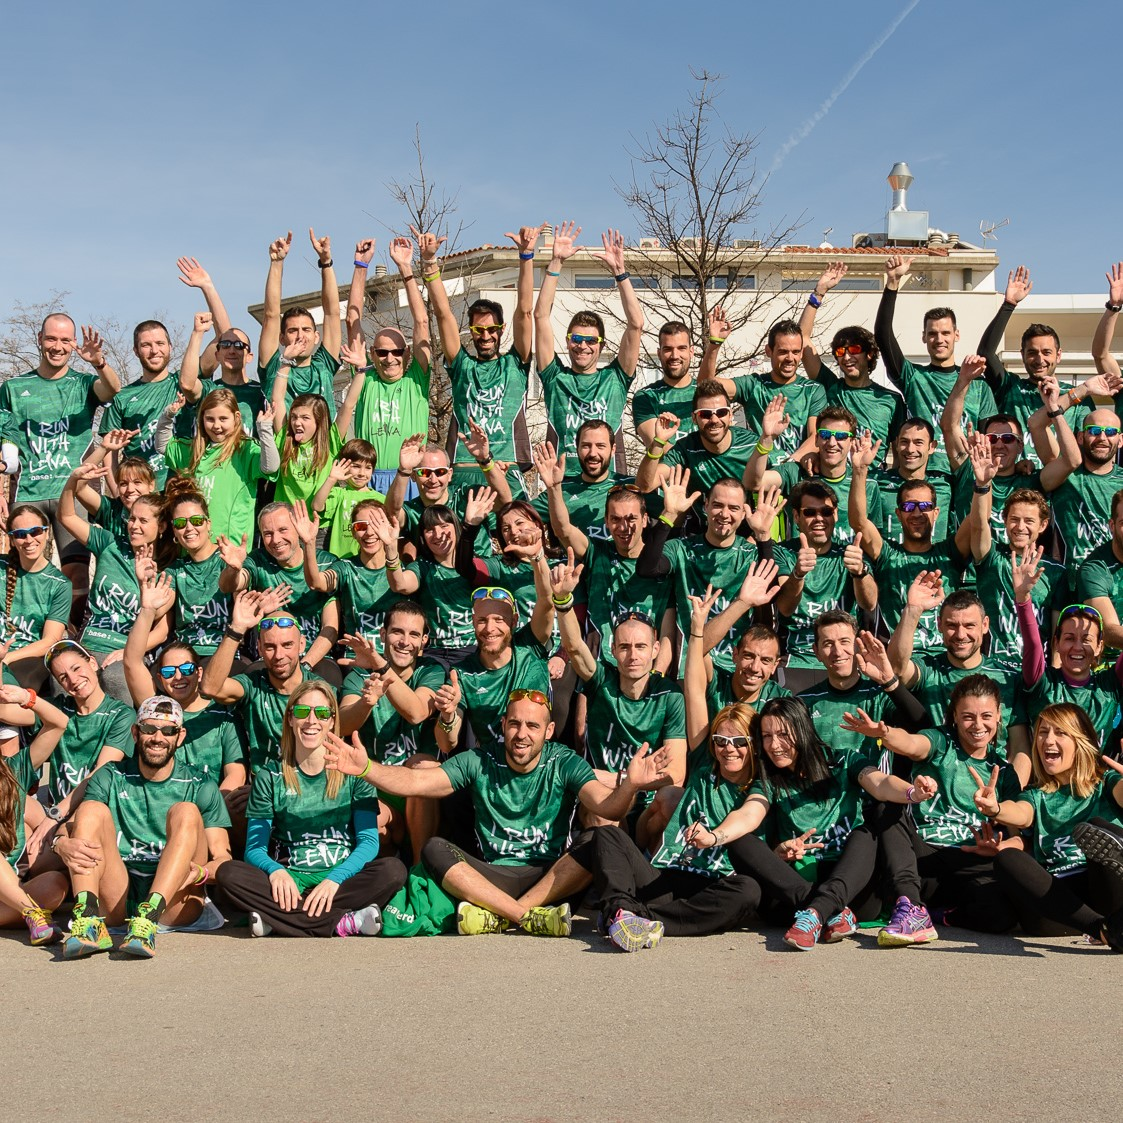 CLUB I RUN WITH LEIVA ATLETISMO KRONOSPORTS